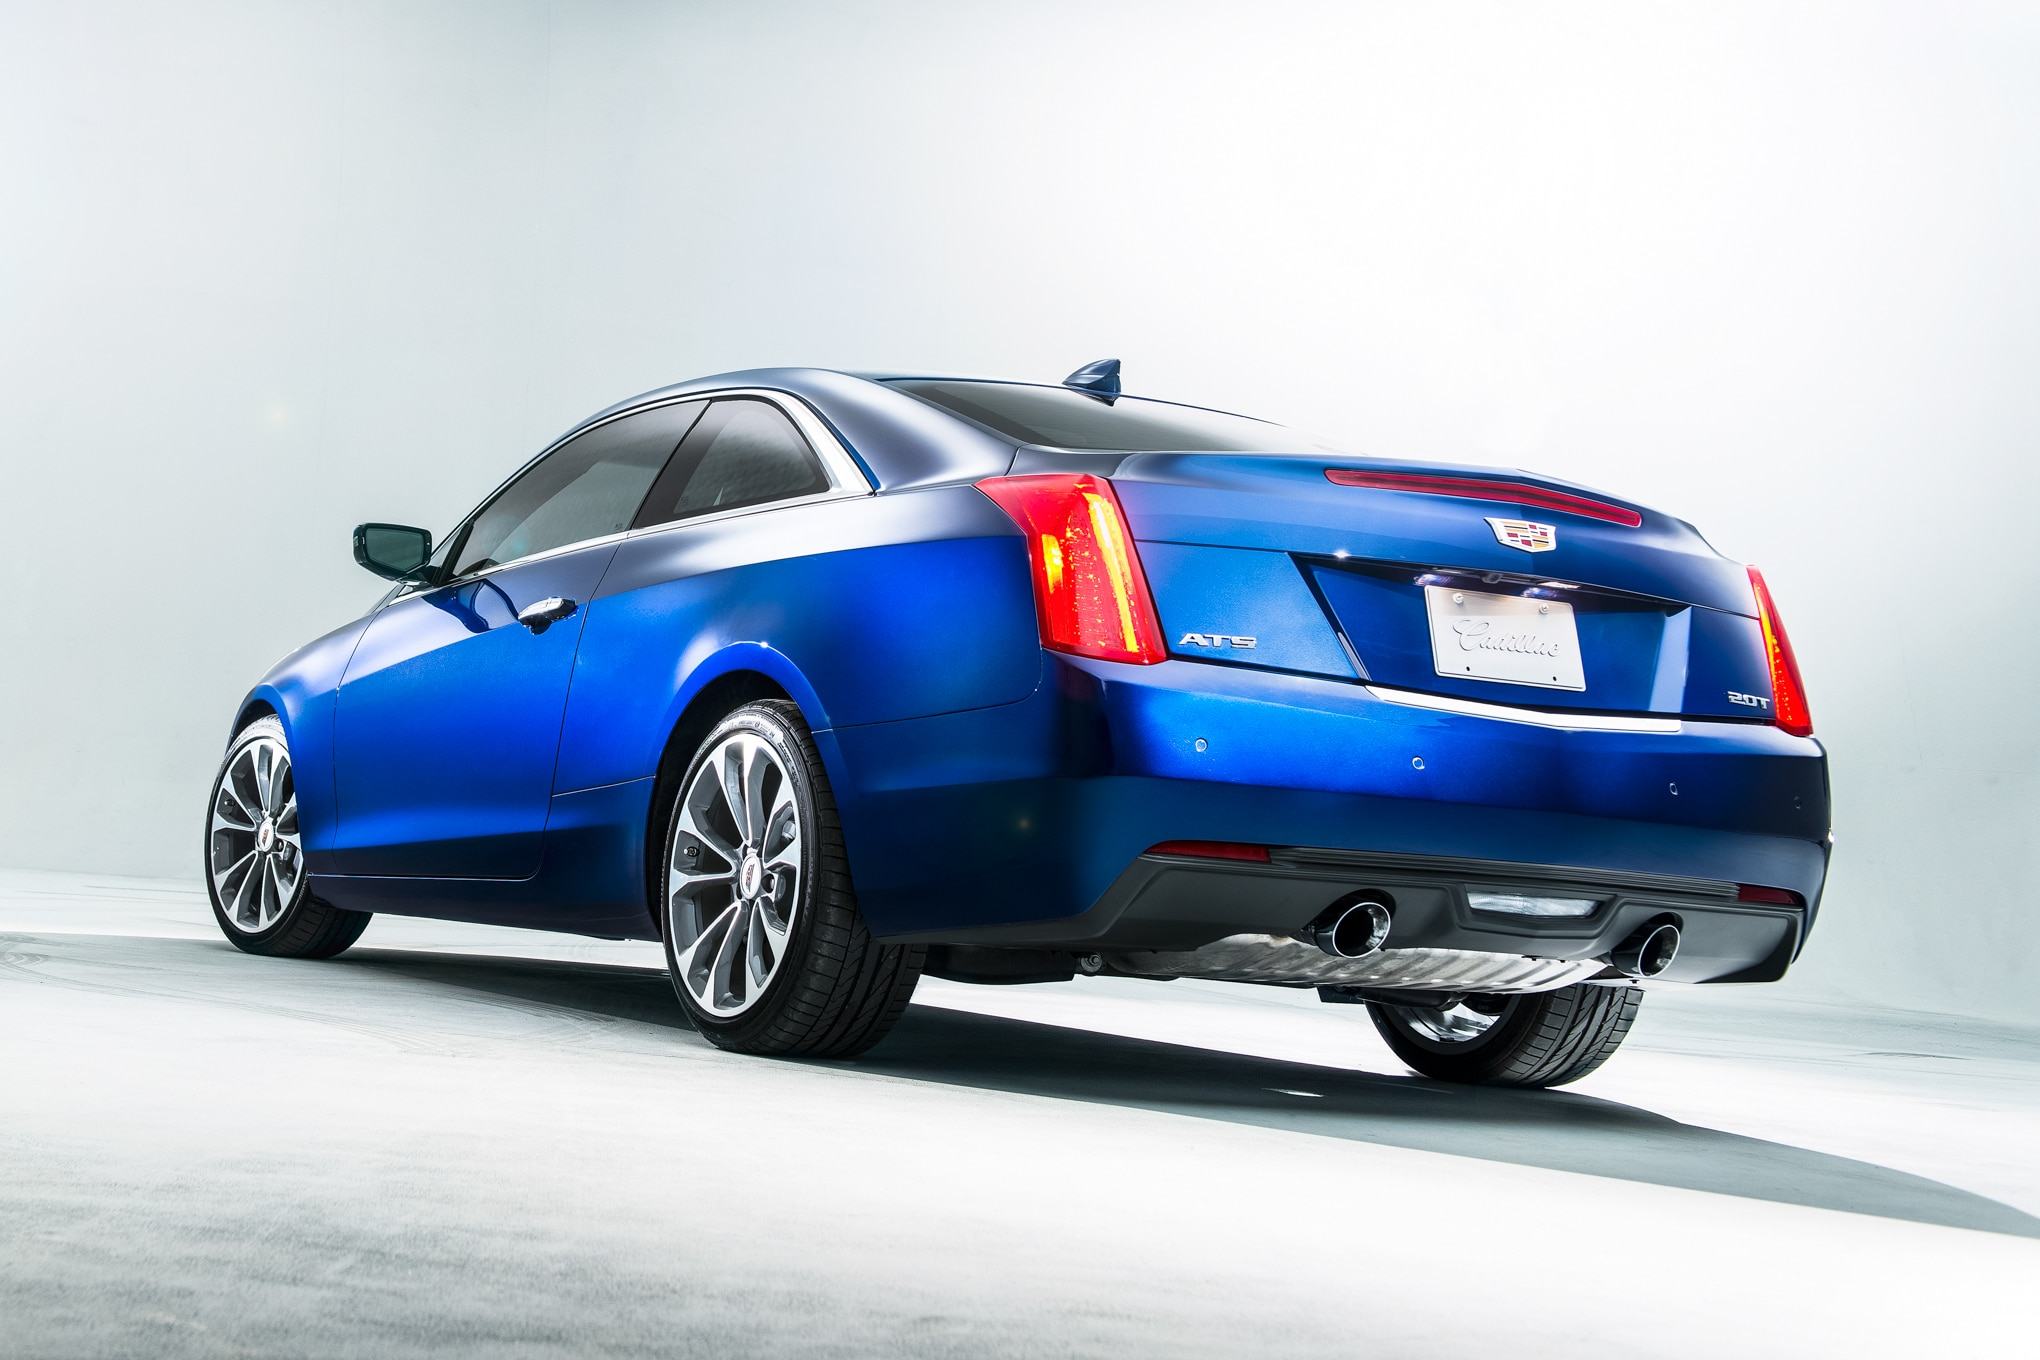 2015 Cadillac ATS Coupe Rear View1